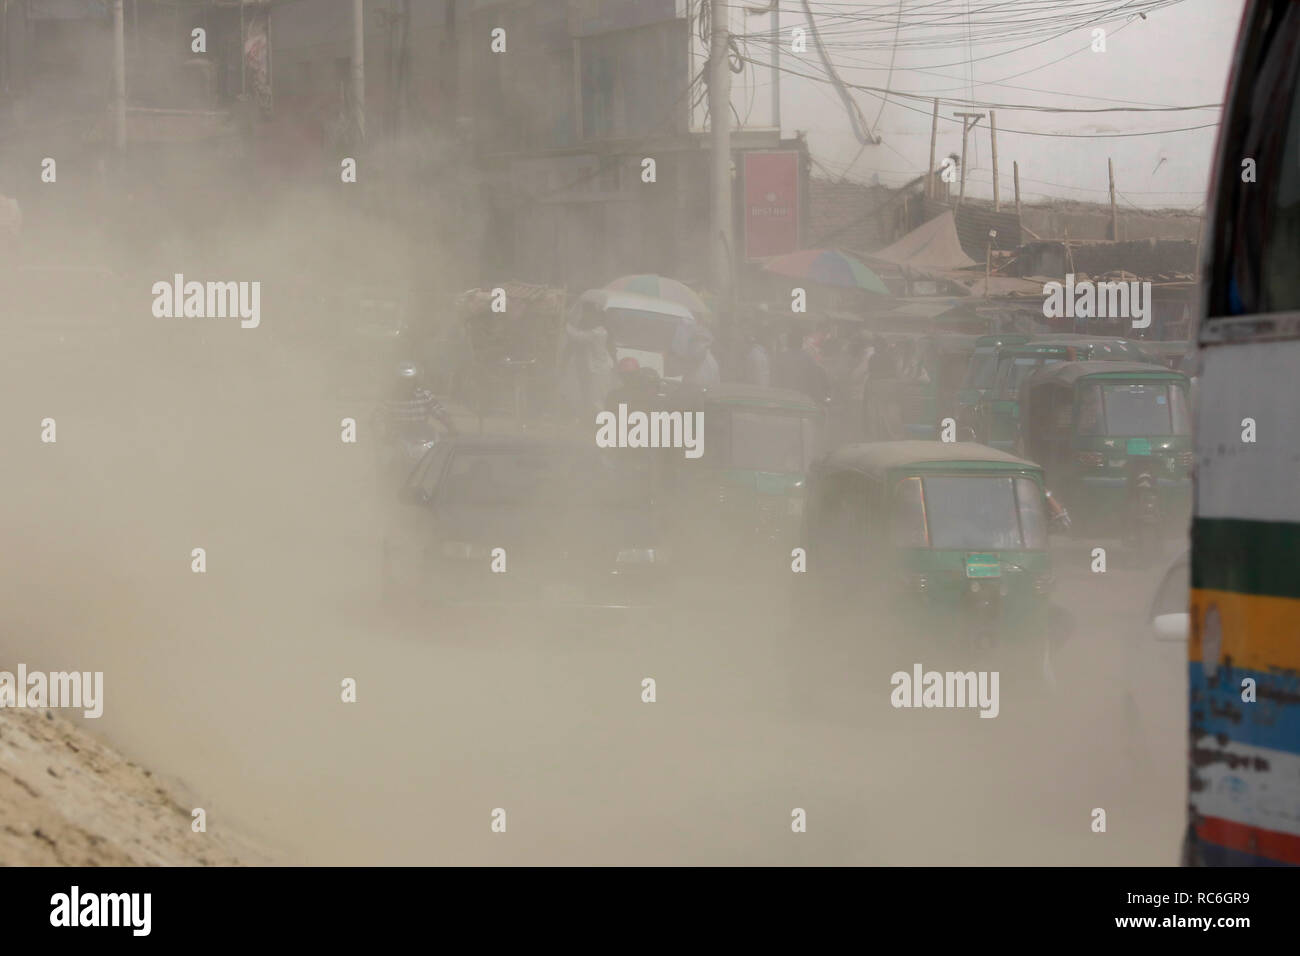 Dhaka, Bangladesh - January 14, 2019: The dusty blanket of the ongoing development work for Dhaka-Mawa Highway. People at Postogola in Dhaka have long been putting up with the deadly pollution. Credit: SK Hasan Ali/Alamy Live News - Stock Image